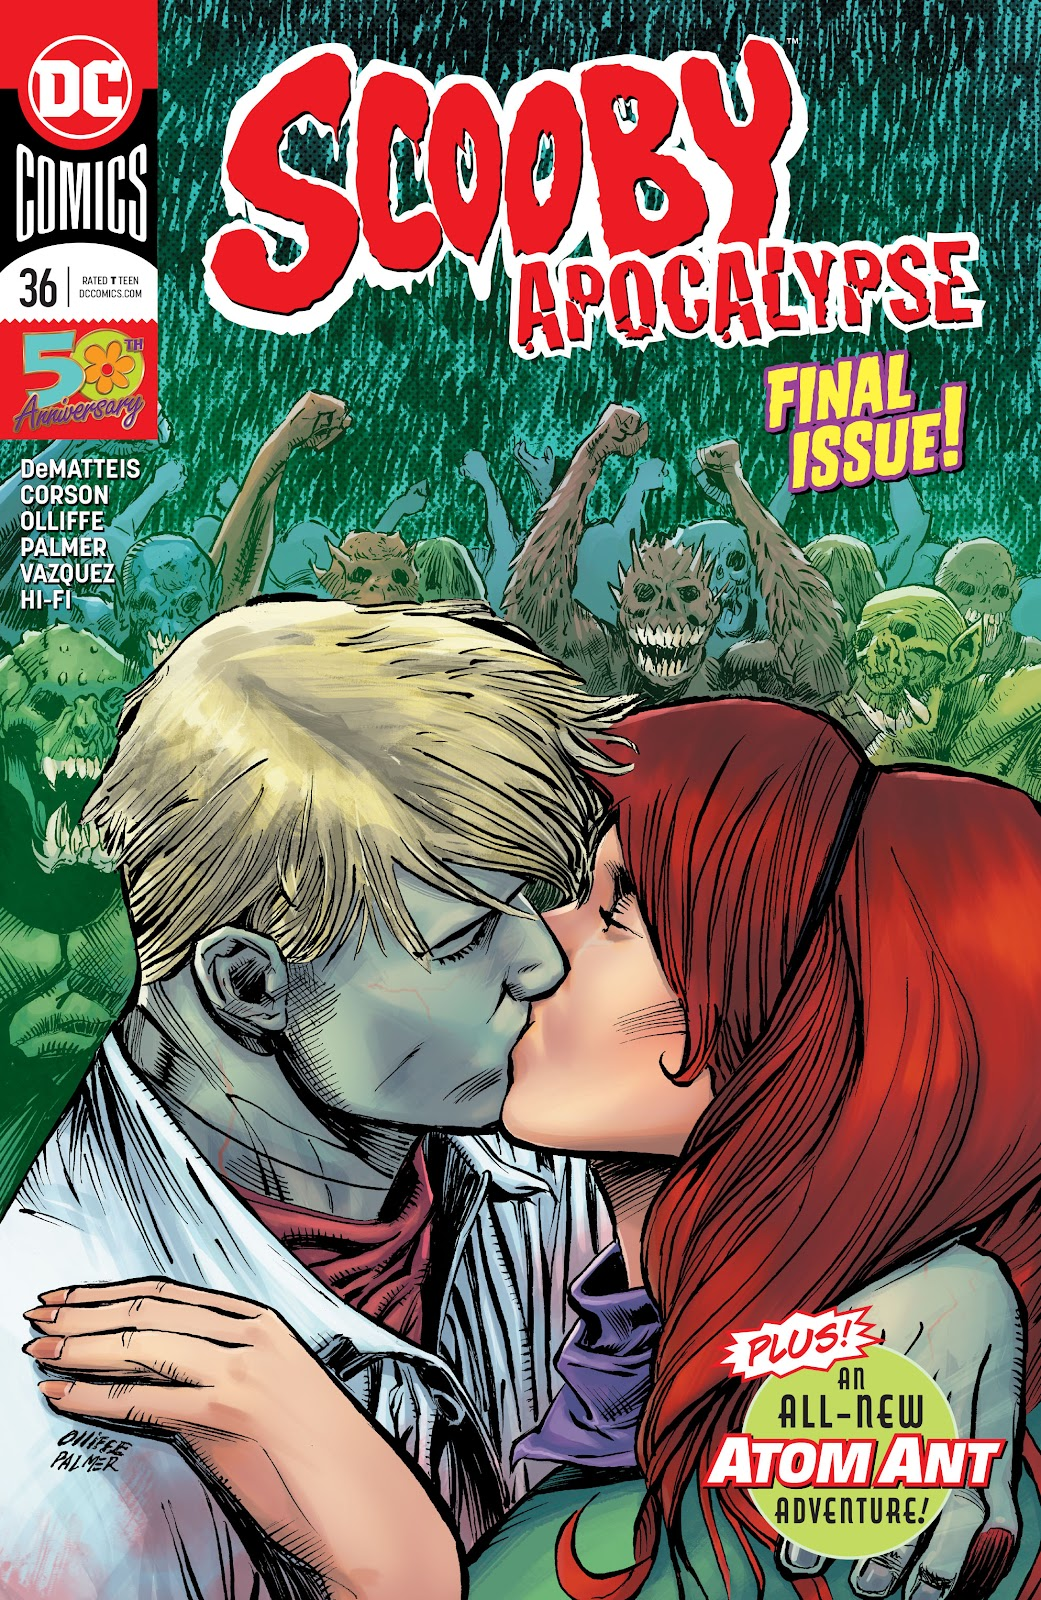 Read online Scooby Apocalypse comic -  Issue #36 - 1